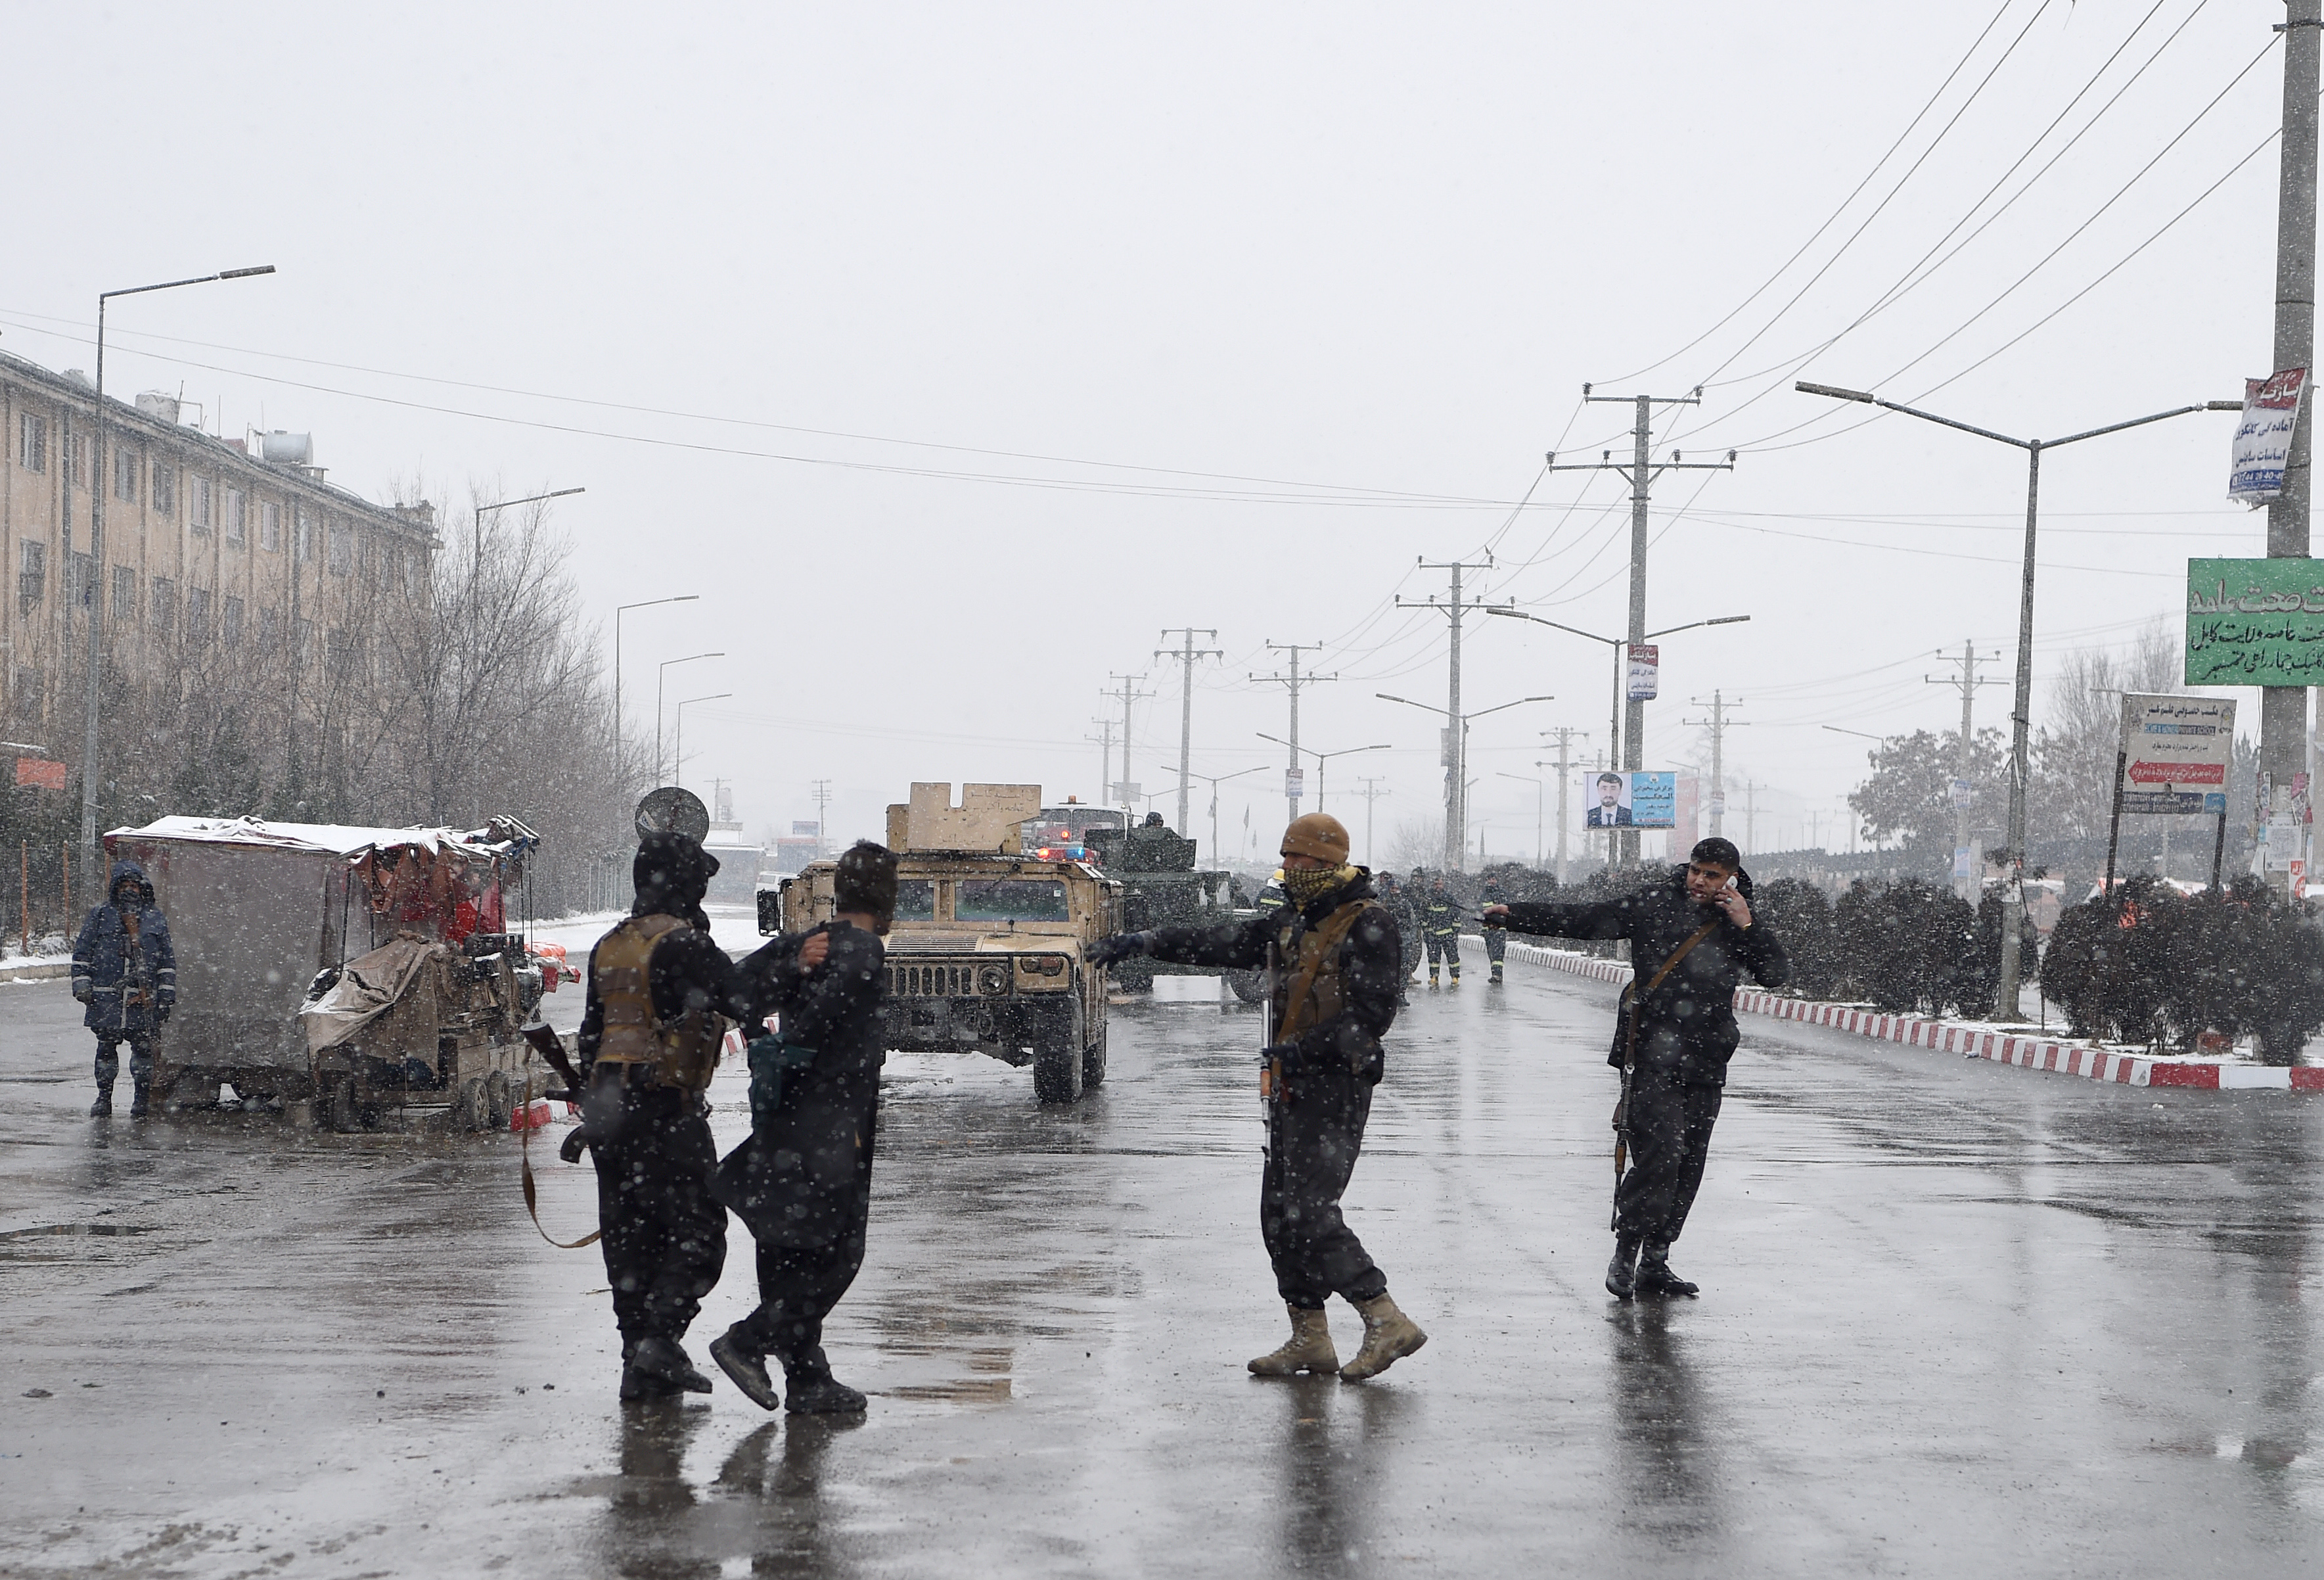 Afghan security personnel detain a suspect as they guard the site of an attack near the Marshal Fahim Military Academy base in Kabul on January 29, 2018.